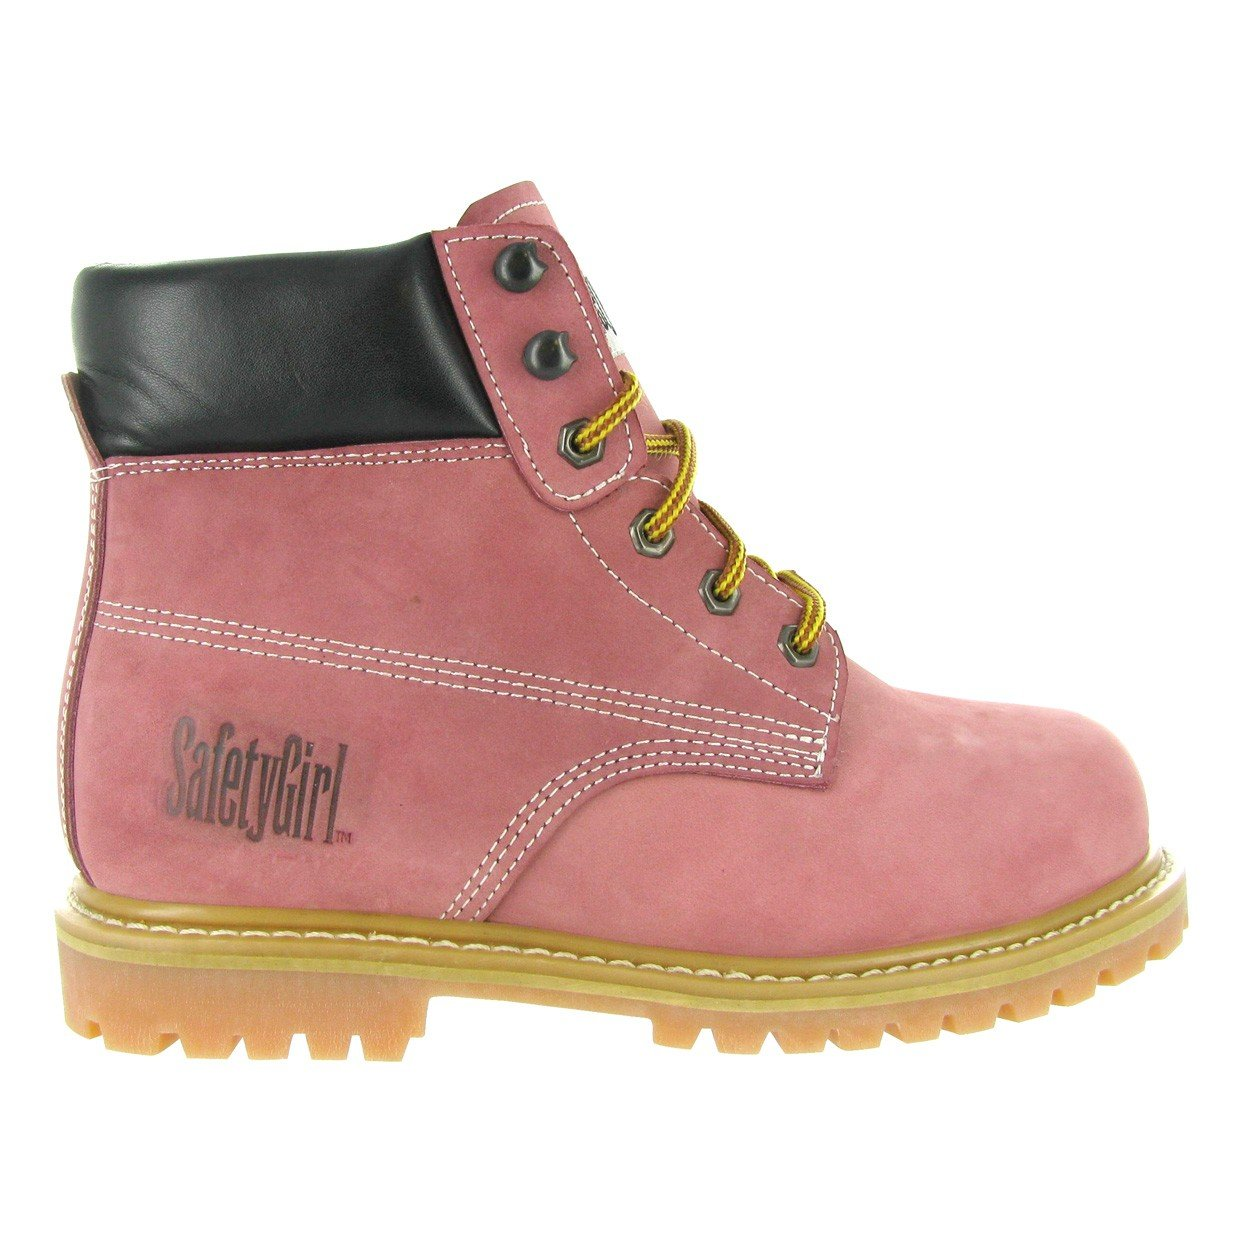 Safety Girl GS003-Lt Pink-9M Steel Toe Work Boots - Light Pink - 9M, English, Capacity, Volume, Leather, 9M, Pink () by Safety Girl (Image #5)